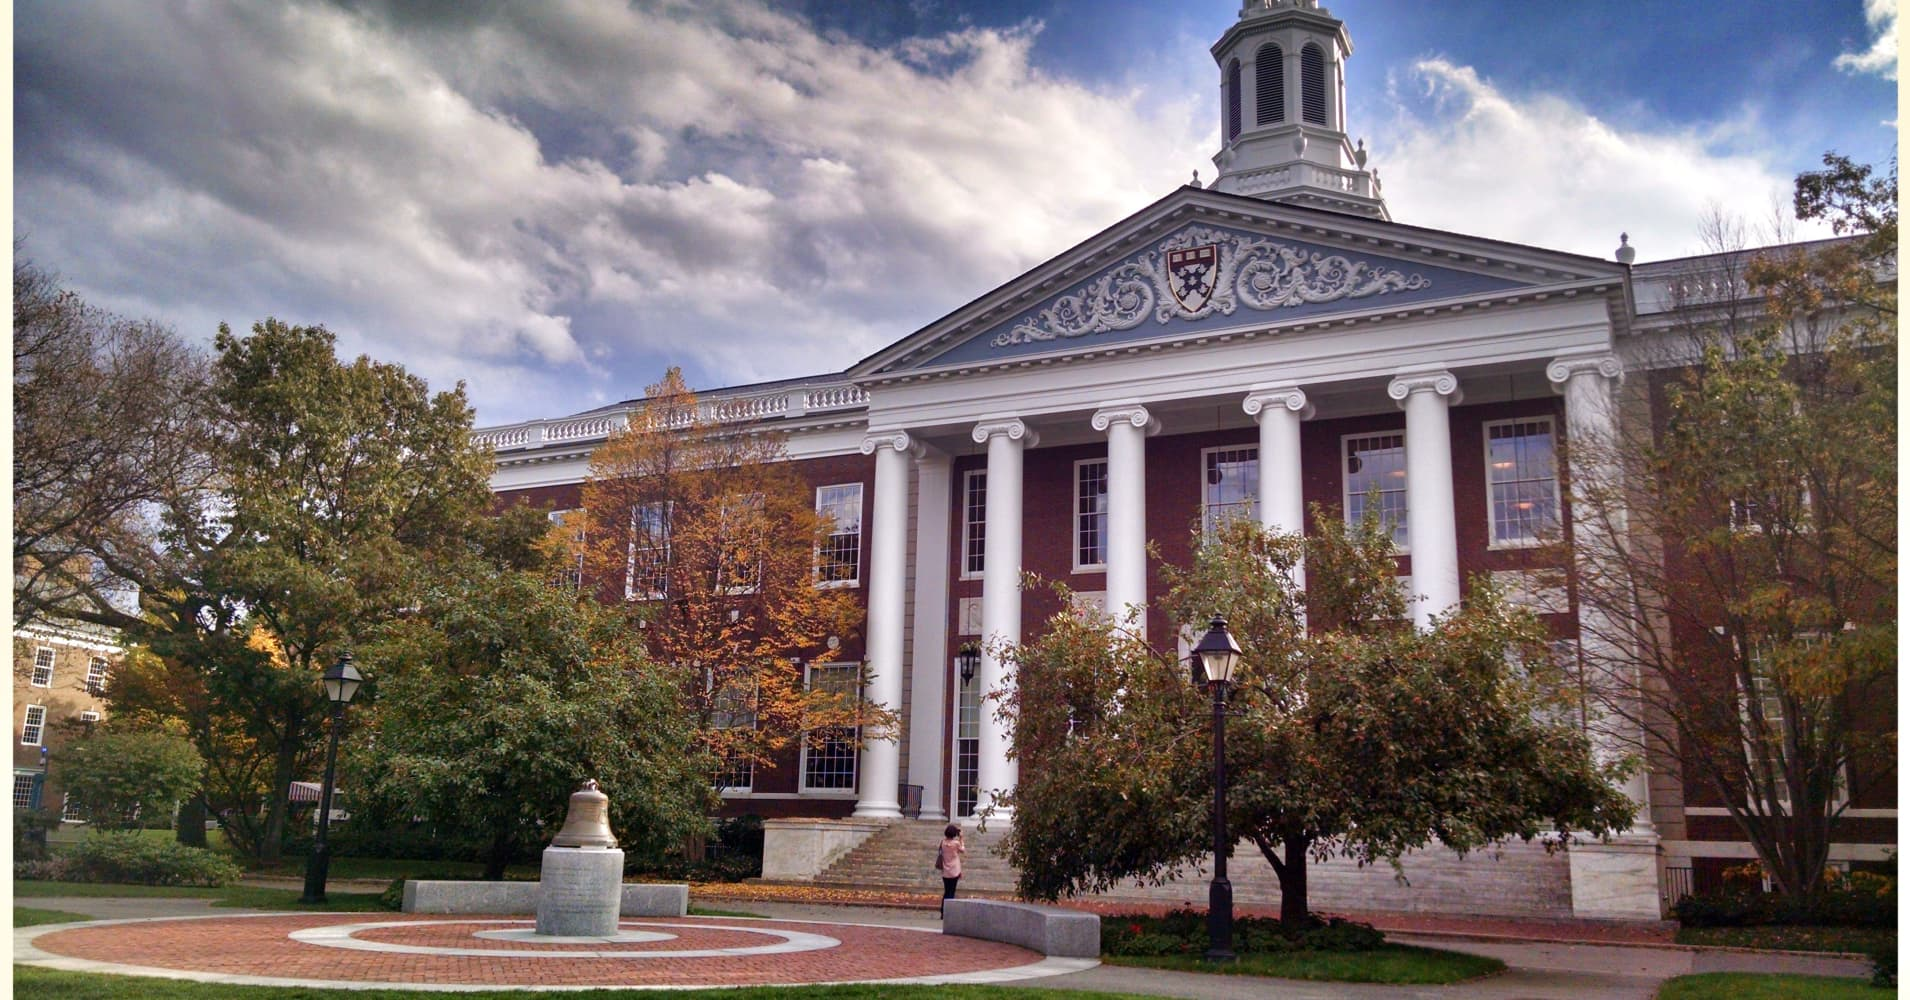 Harvard Business School gets blamed for income inequality-commentary